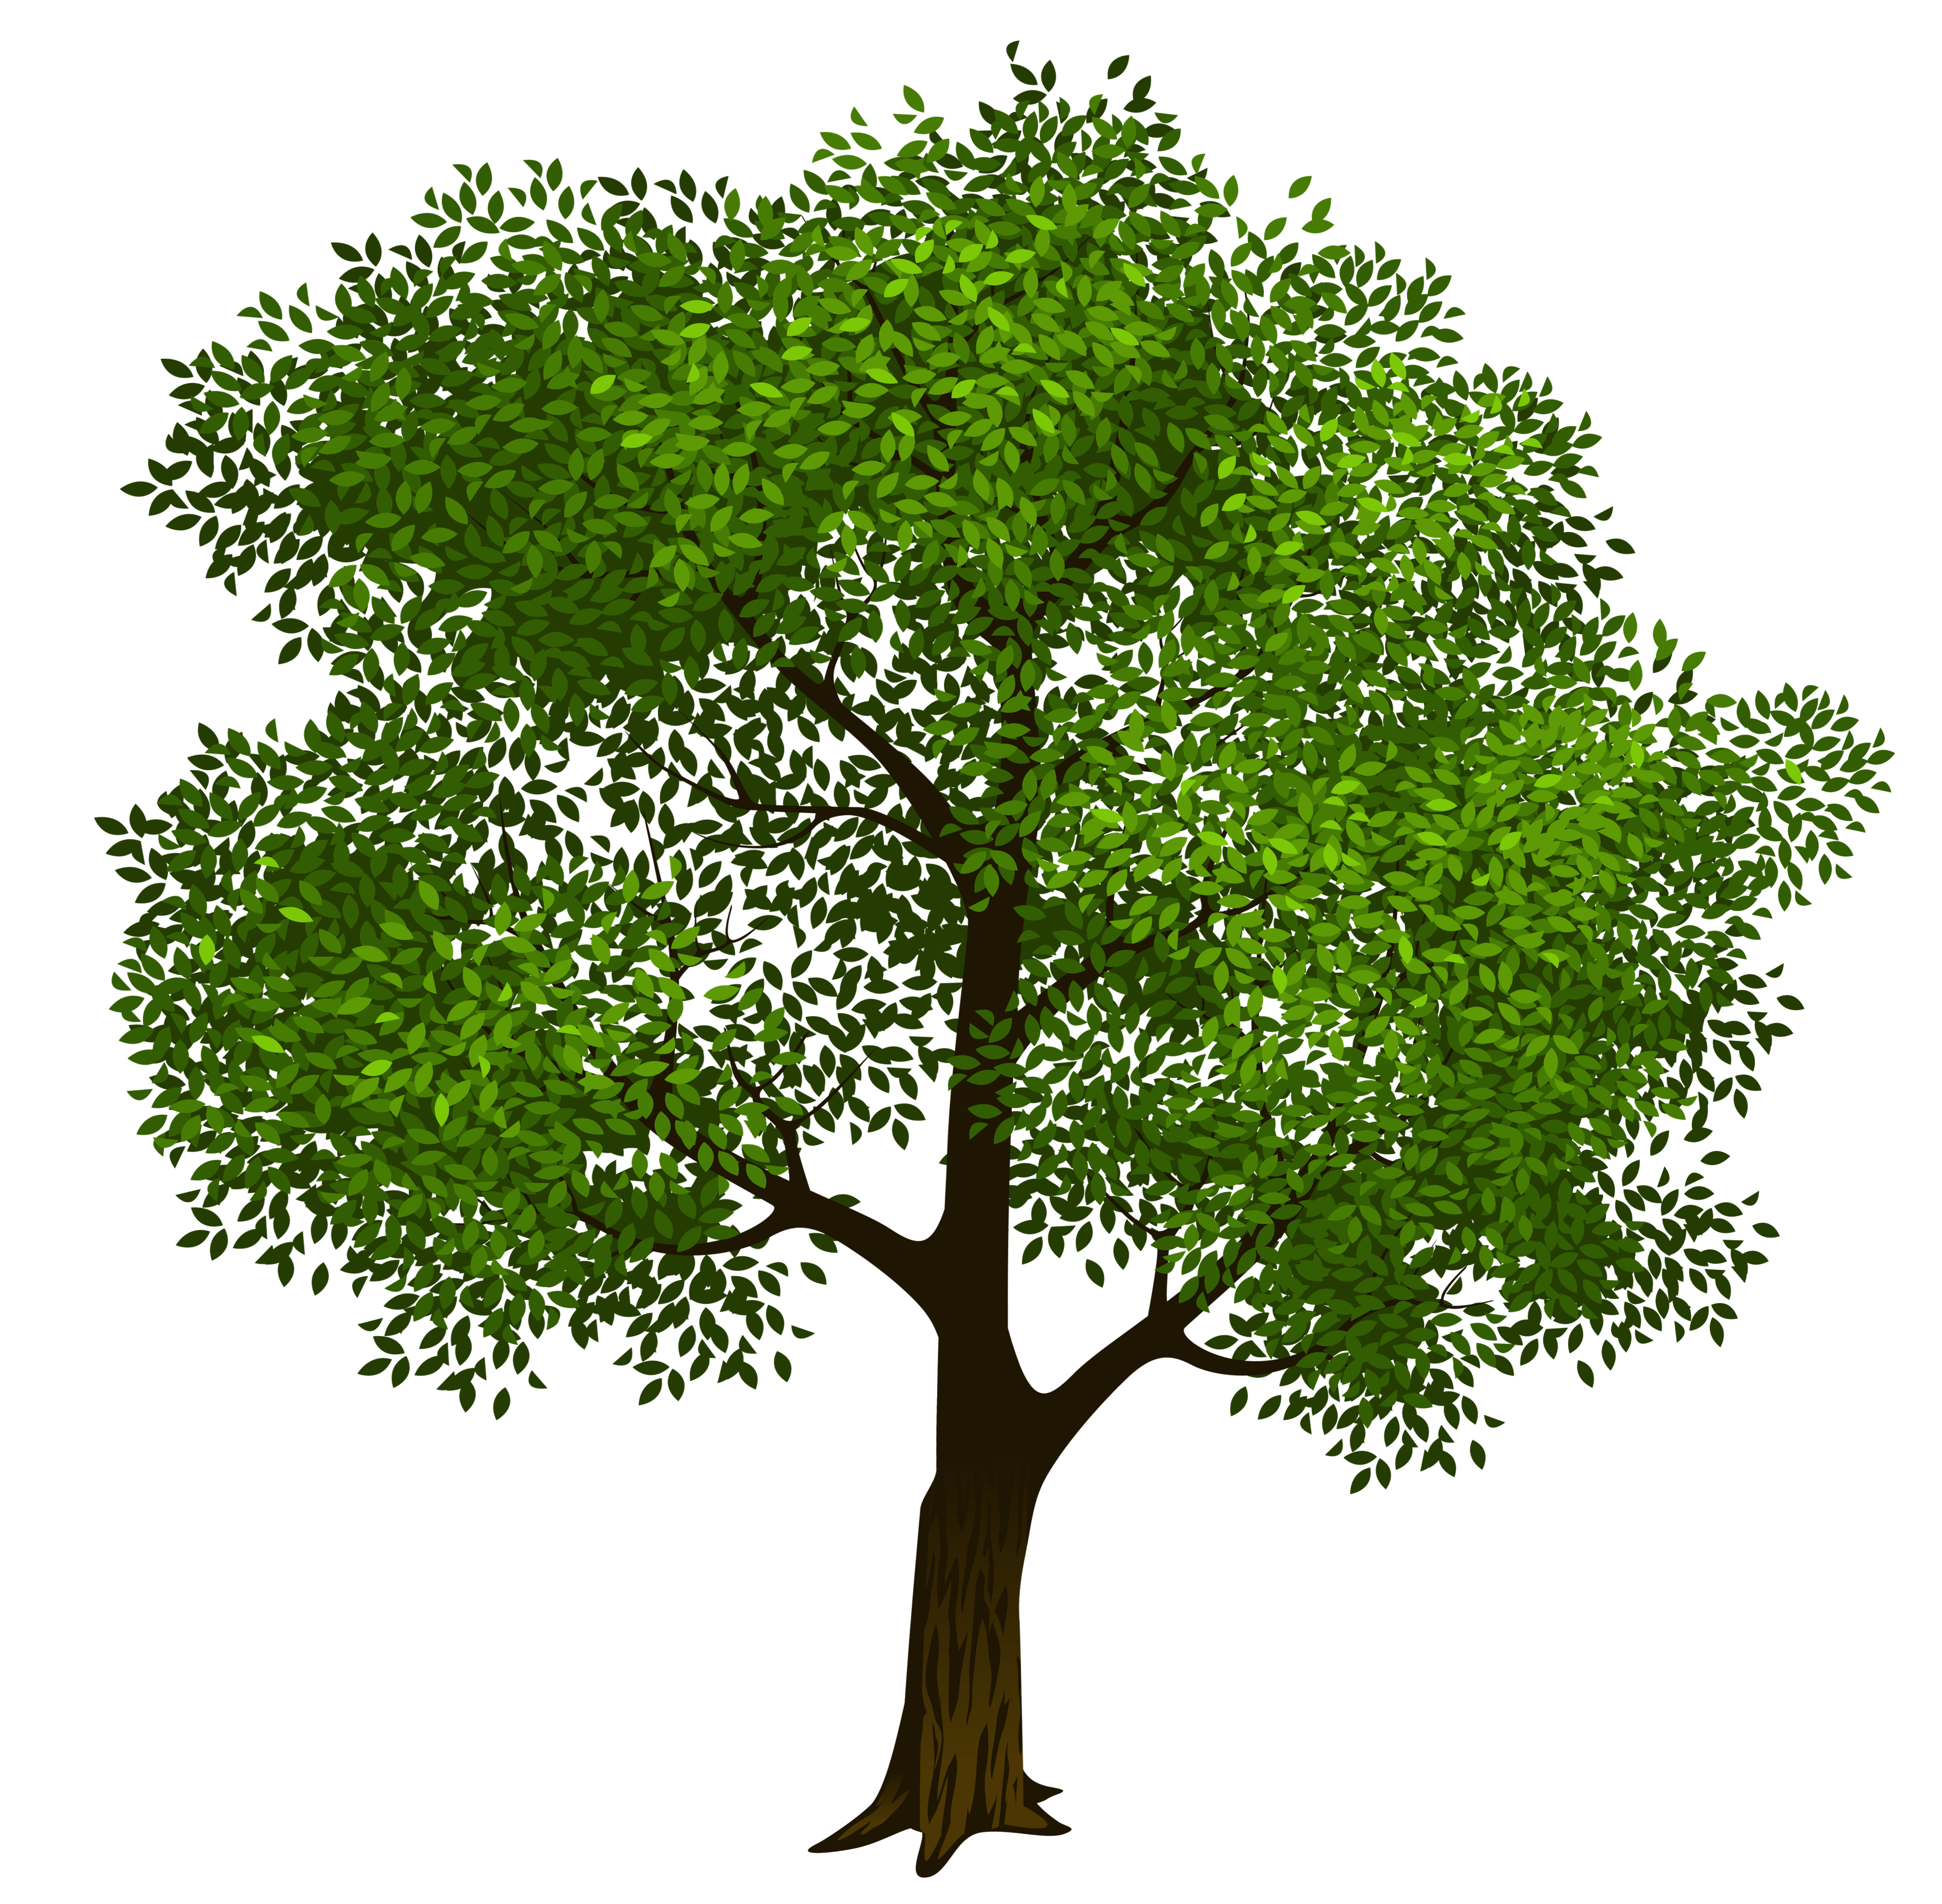 Tree family clipart clip art freeuse Family tree clipart free clipart images - Cliparting.com | DIY and ... clip art freeuse